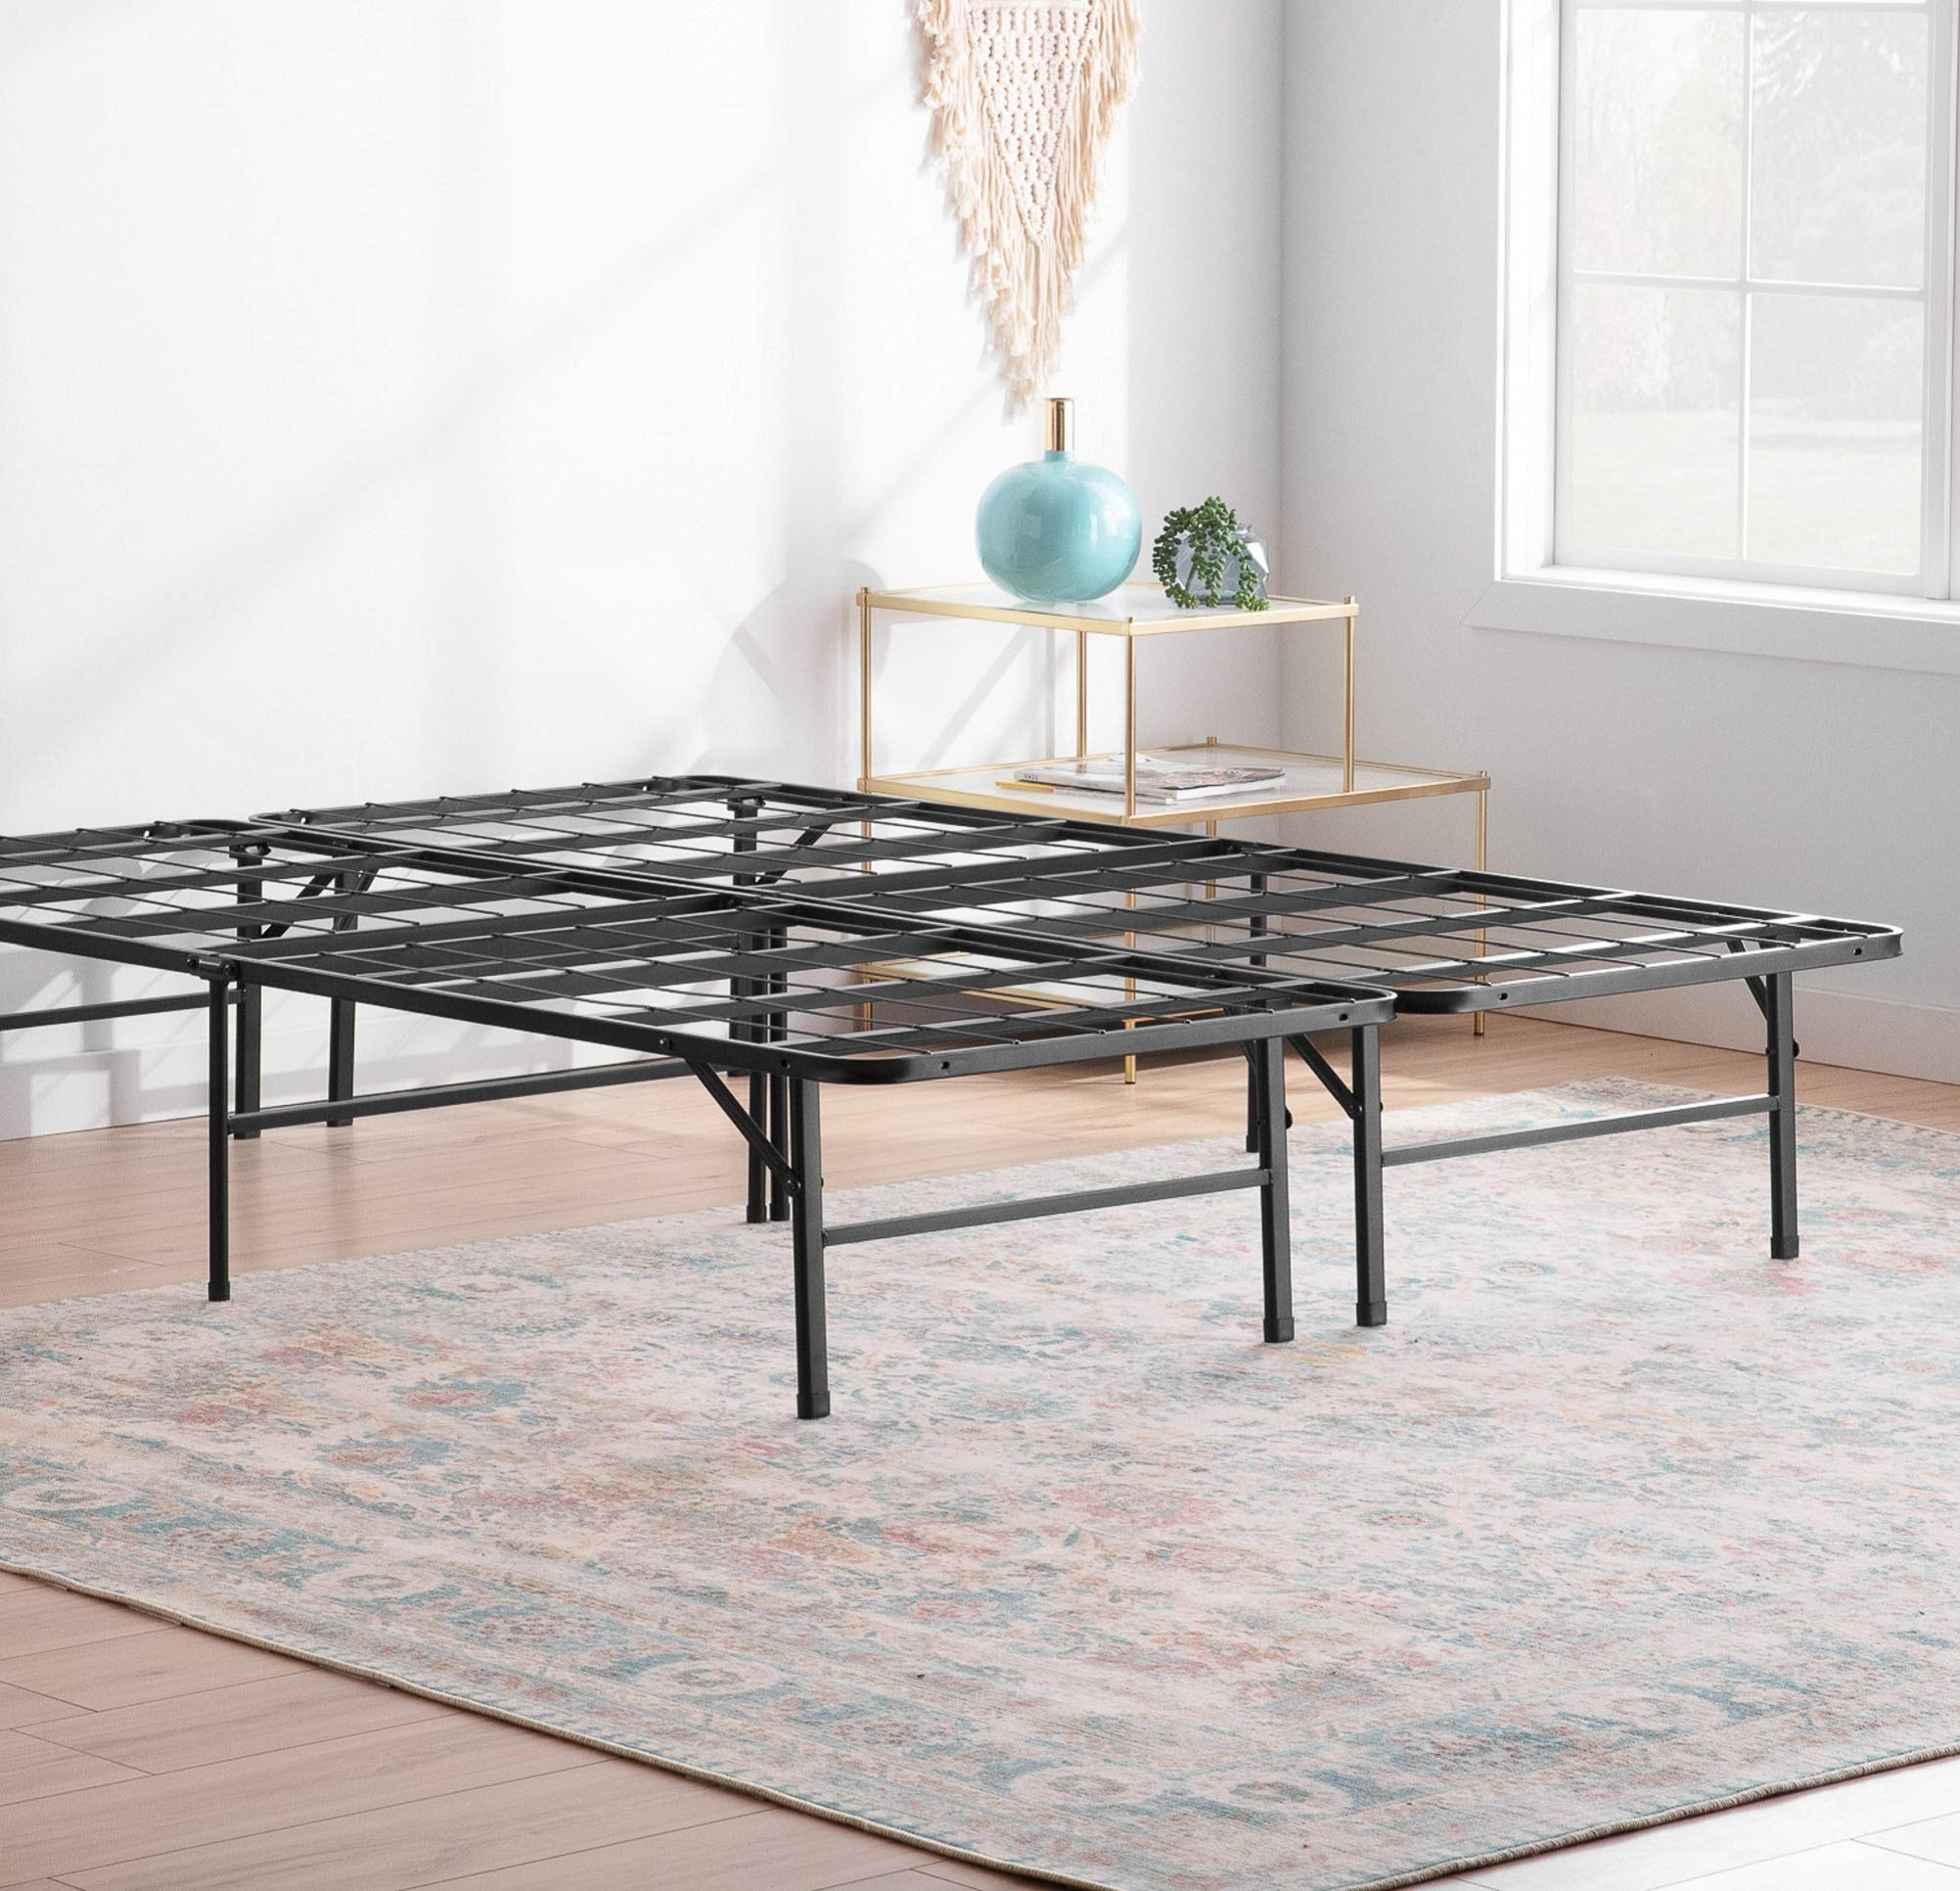 Linenspa 14 Inch Folding Metal Platform Bed Frame - 13 Inches of Clearance - Tons of Under Bed Storage - Heavy Duty Construction - 5 Minute Assembly - Queen by Linenspa